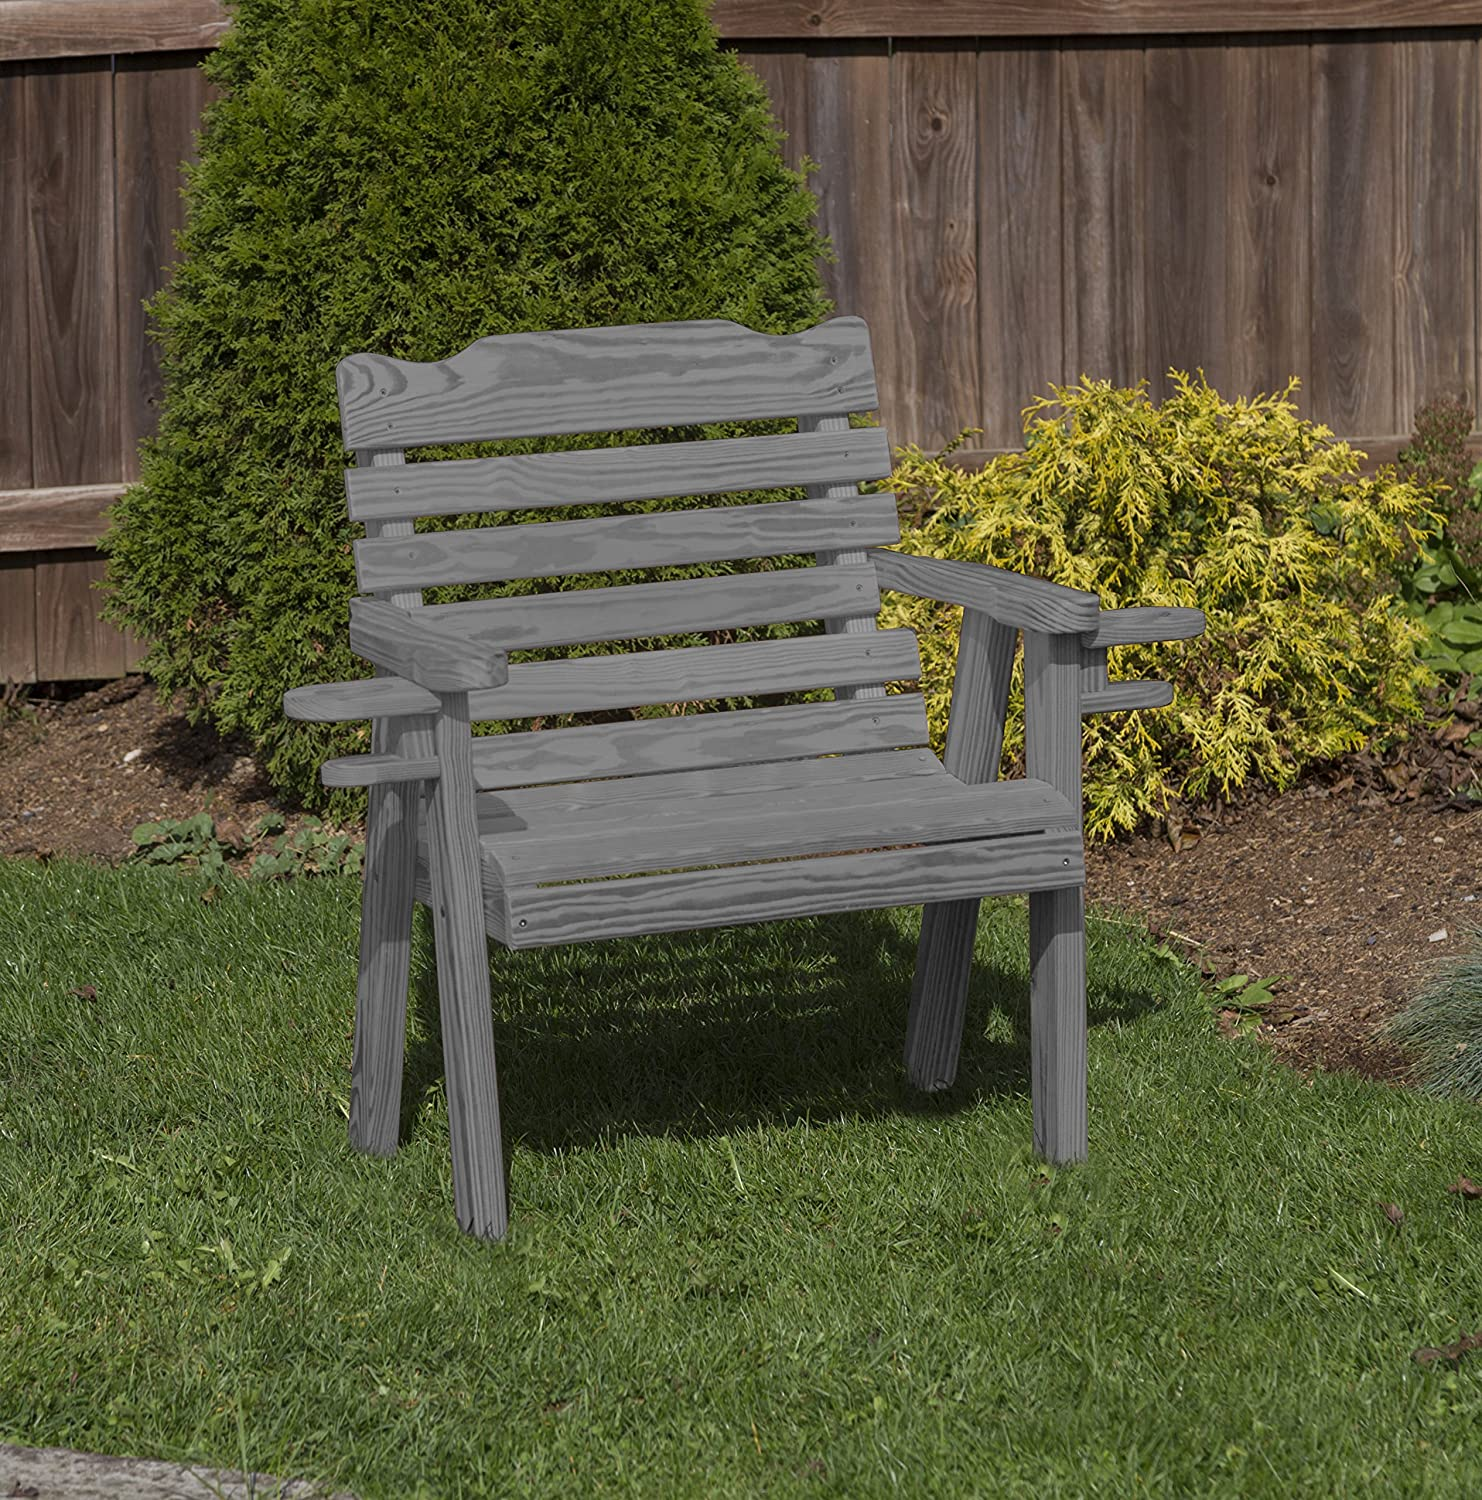 Amish Heavy Duty 800 Lb Classic Park Style Pressure Treated Garden Patio Outdoor Bench Chair 2 FEET with Cup Holders Grey-Made in USA